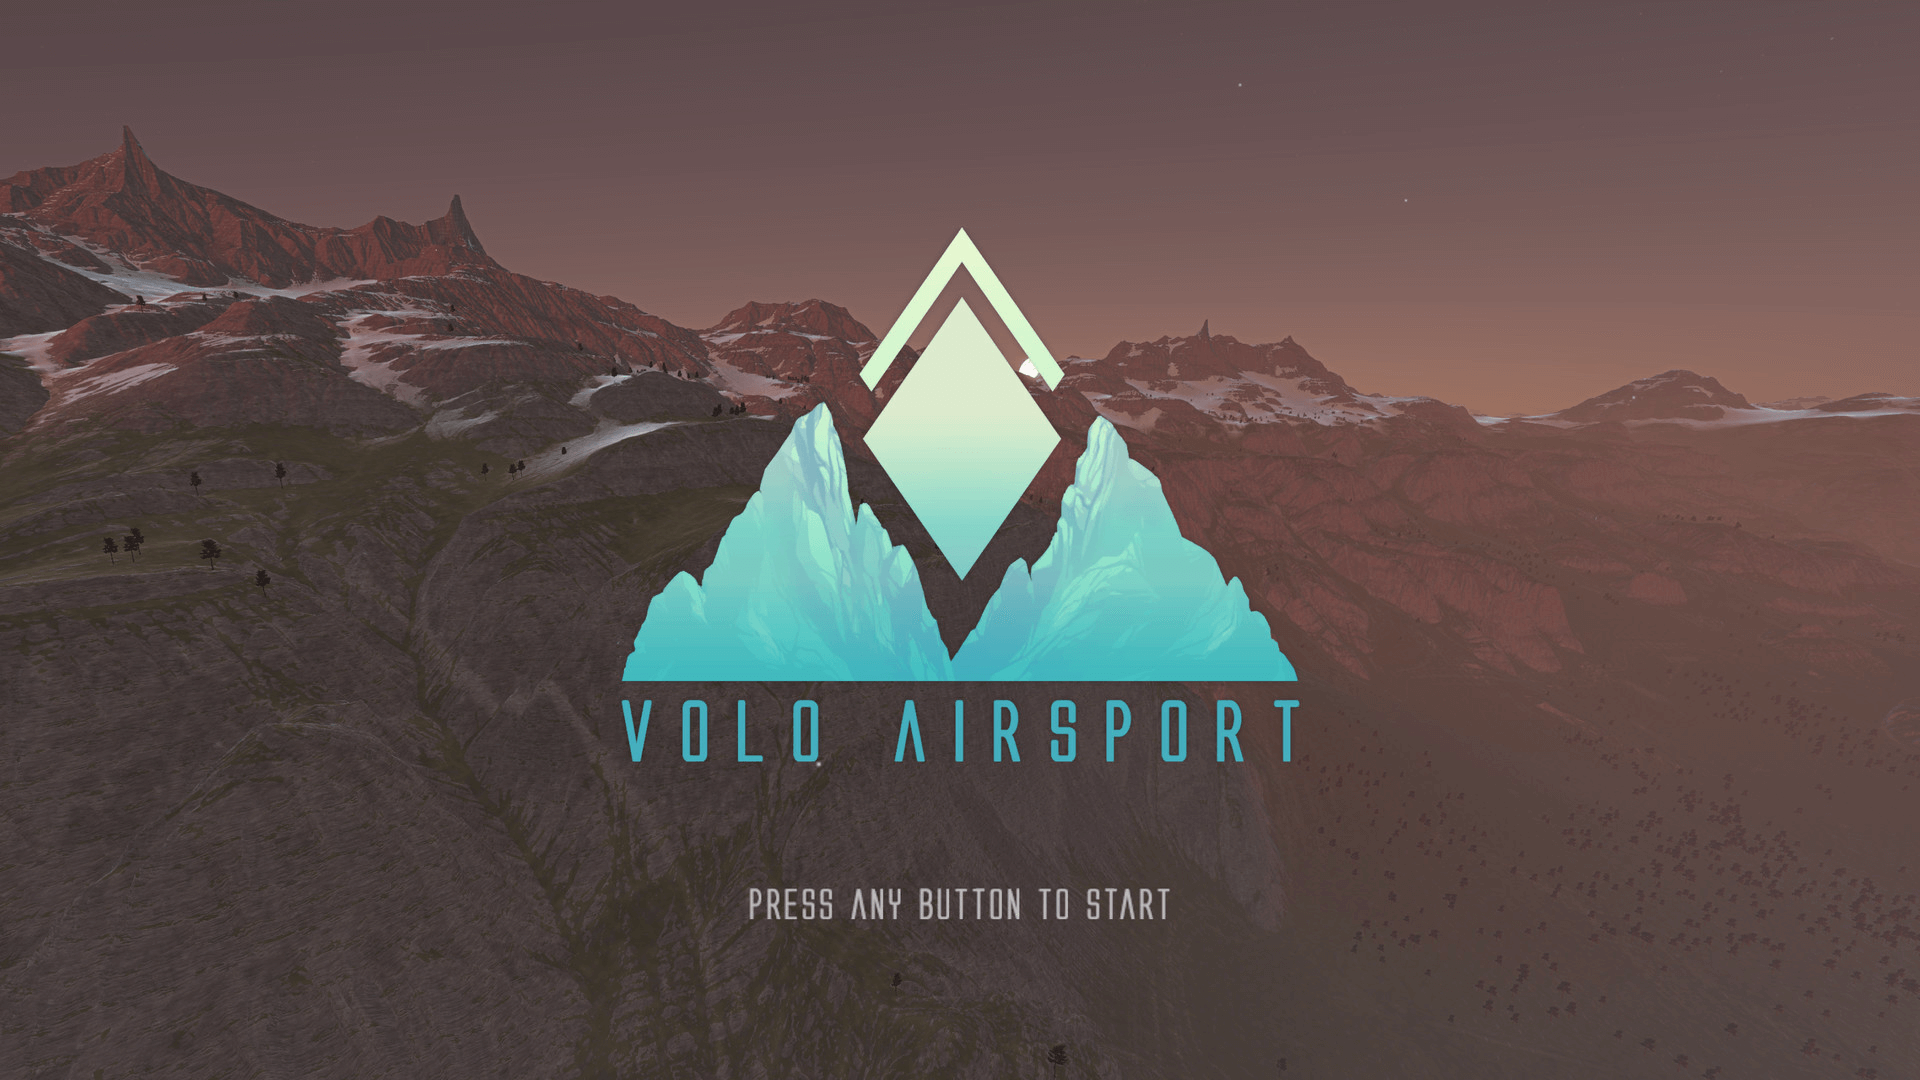 Volo Airsport3